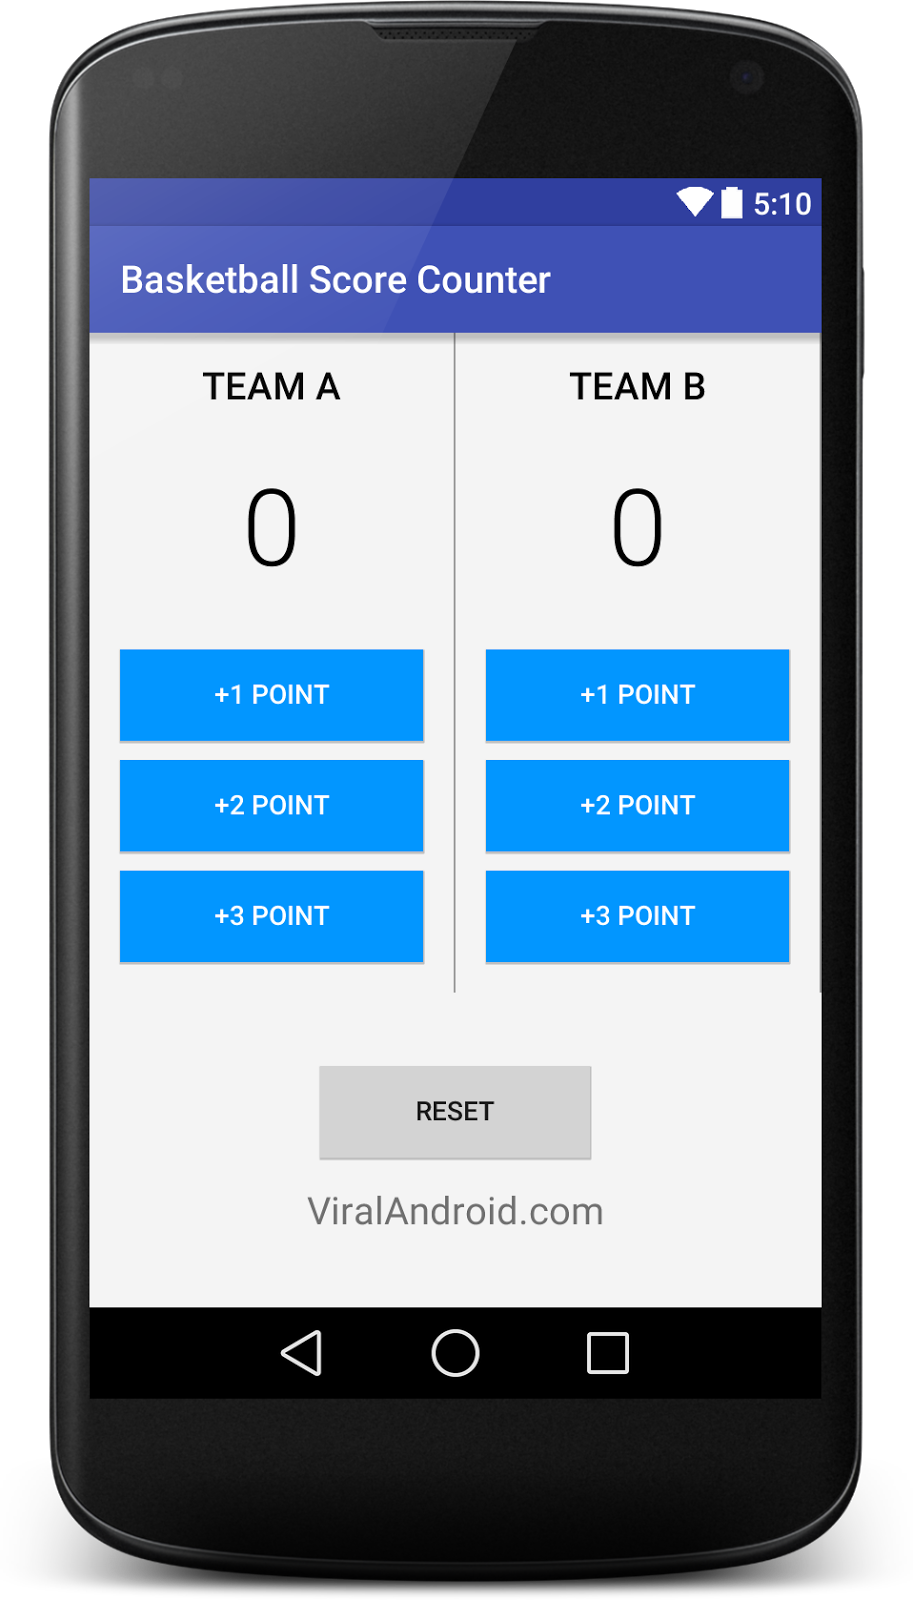 How to Make Basketball Score Counter(Scoreboard) Android Application